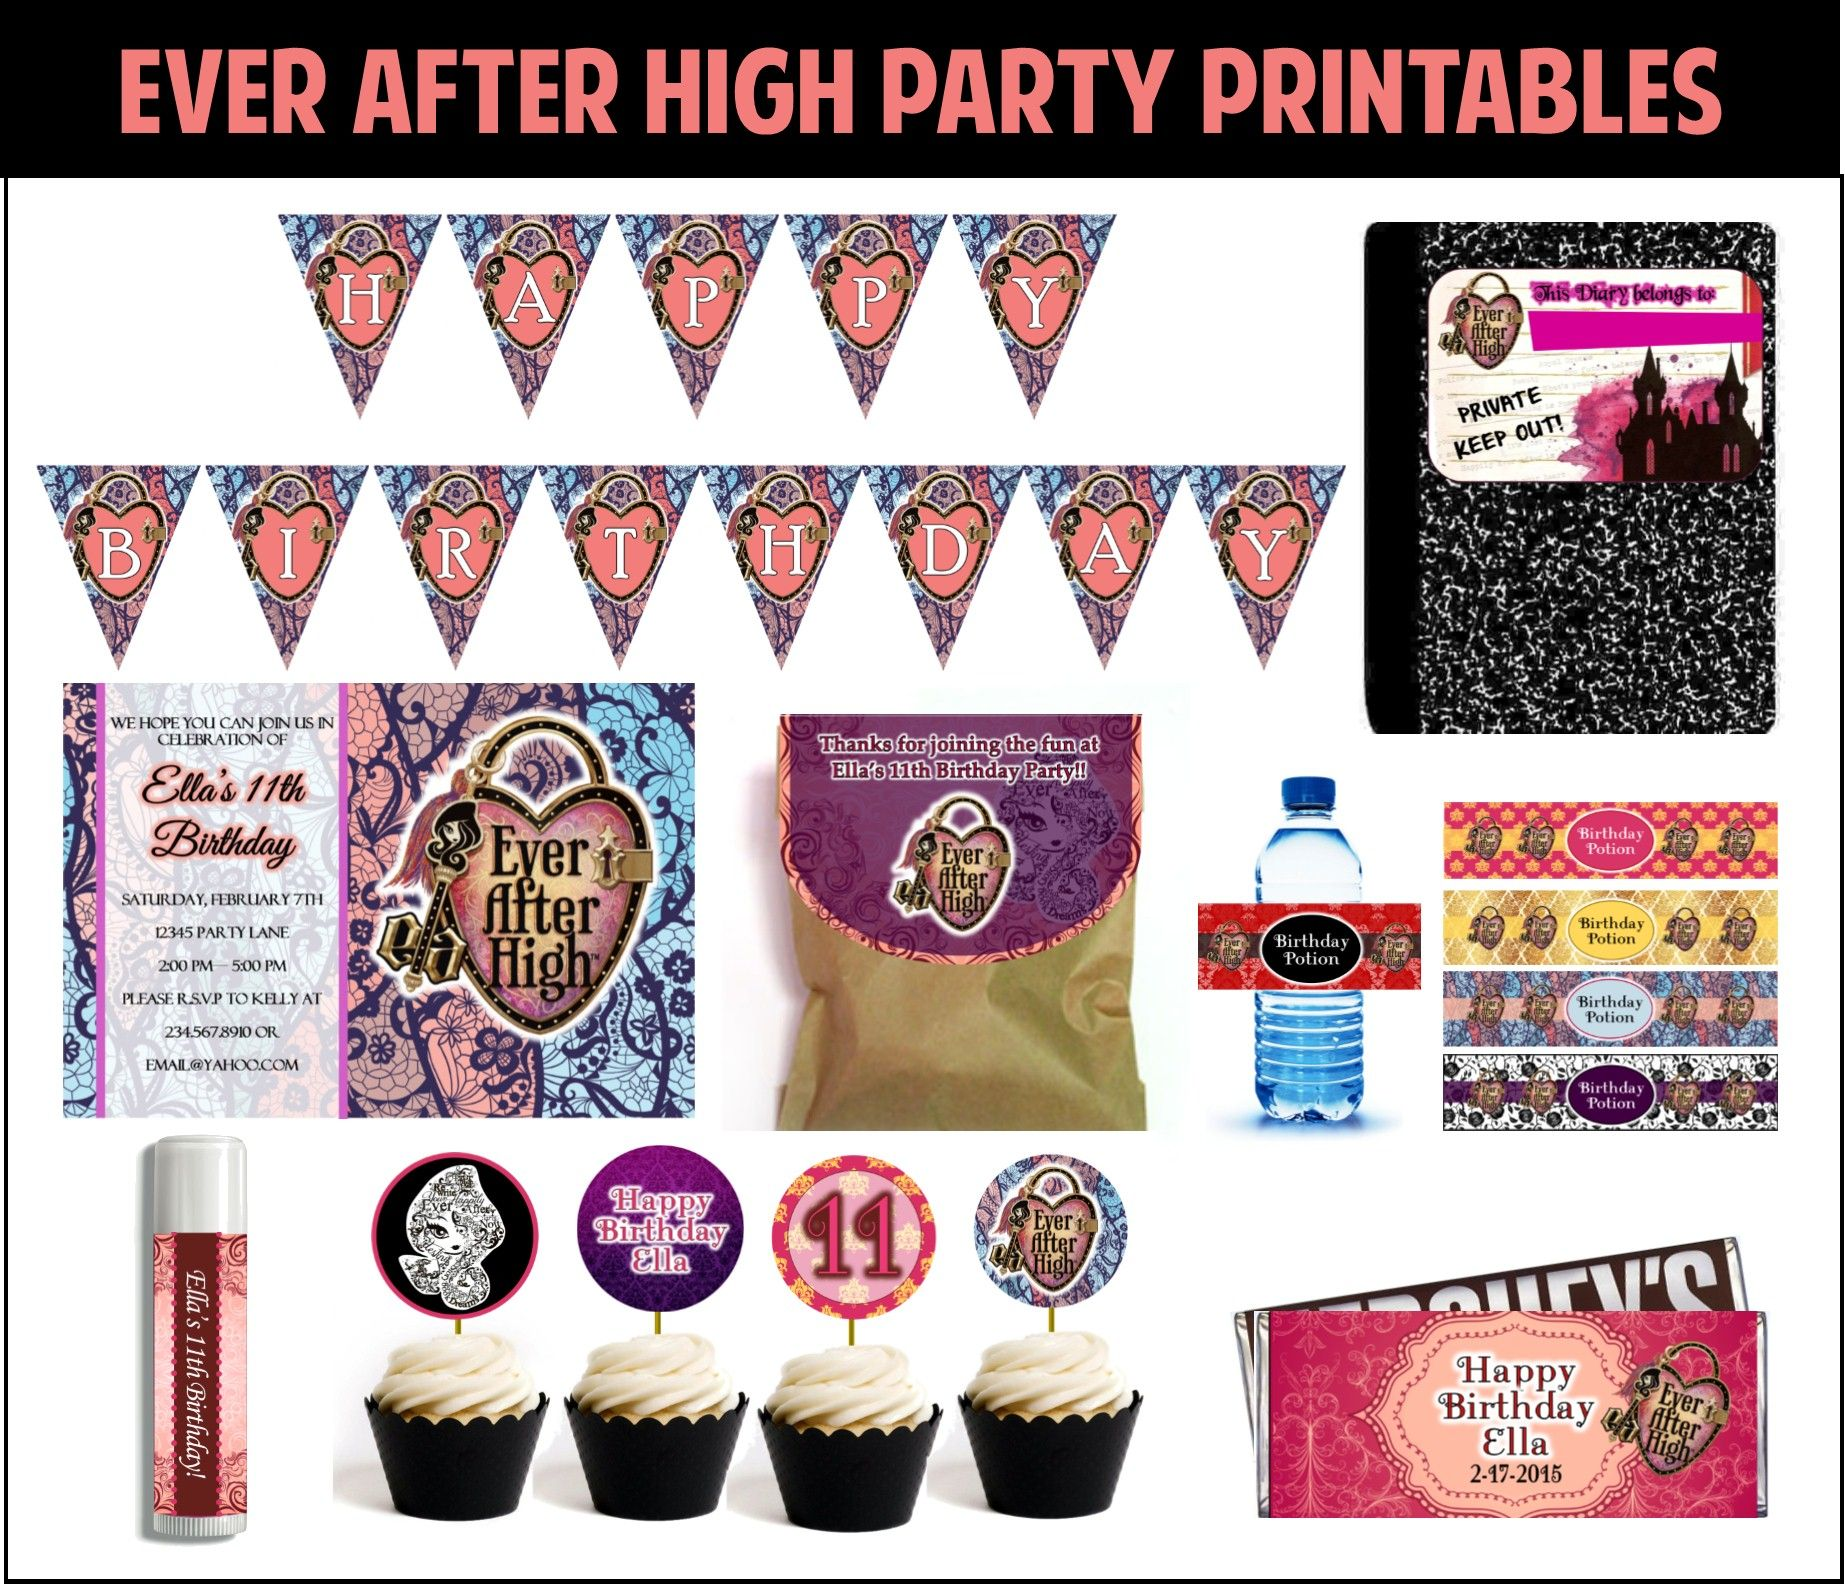 Ever After High party games and ideas to make your theme party